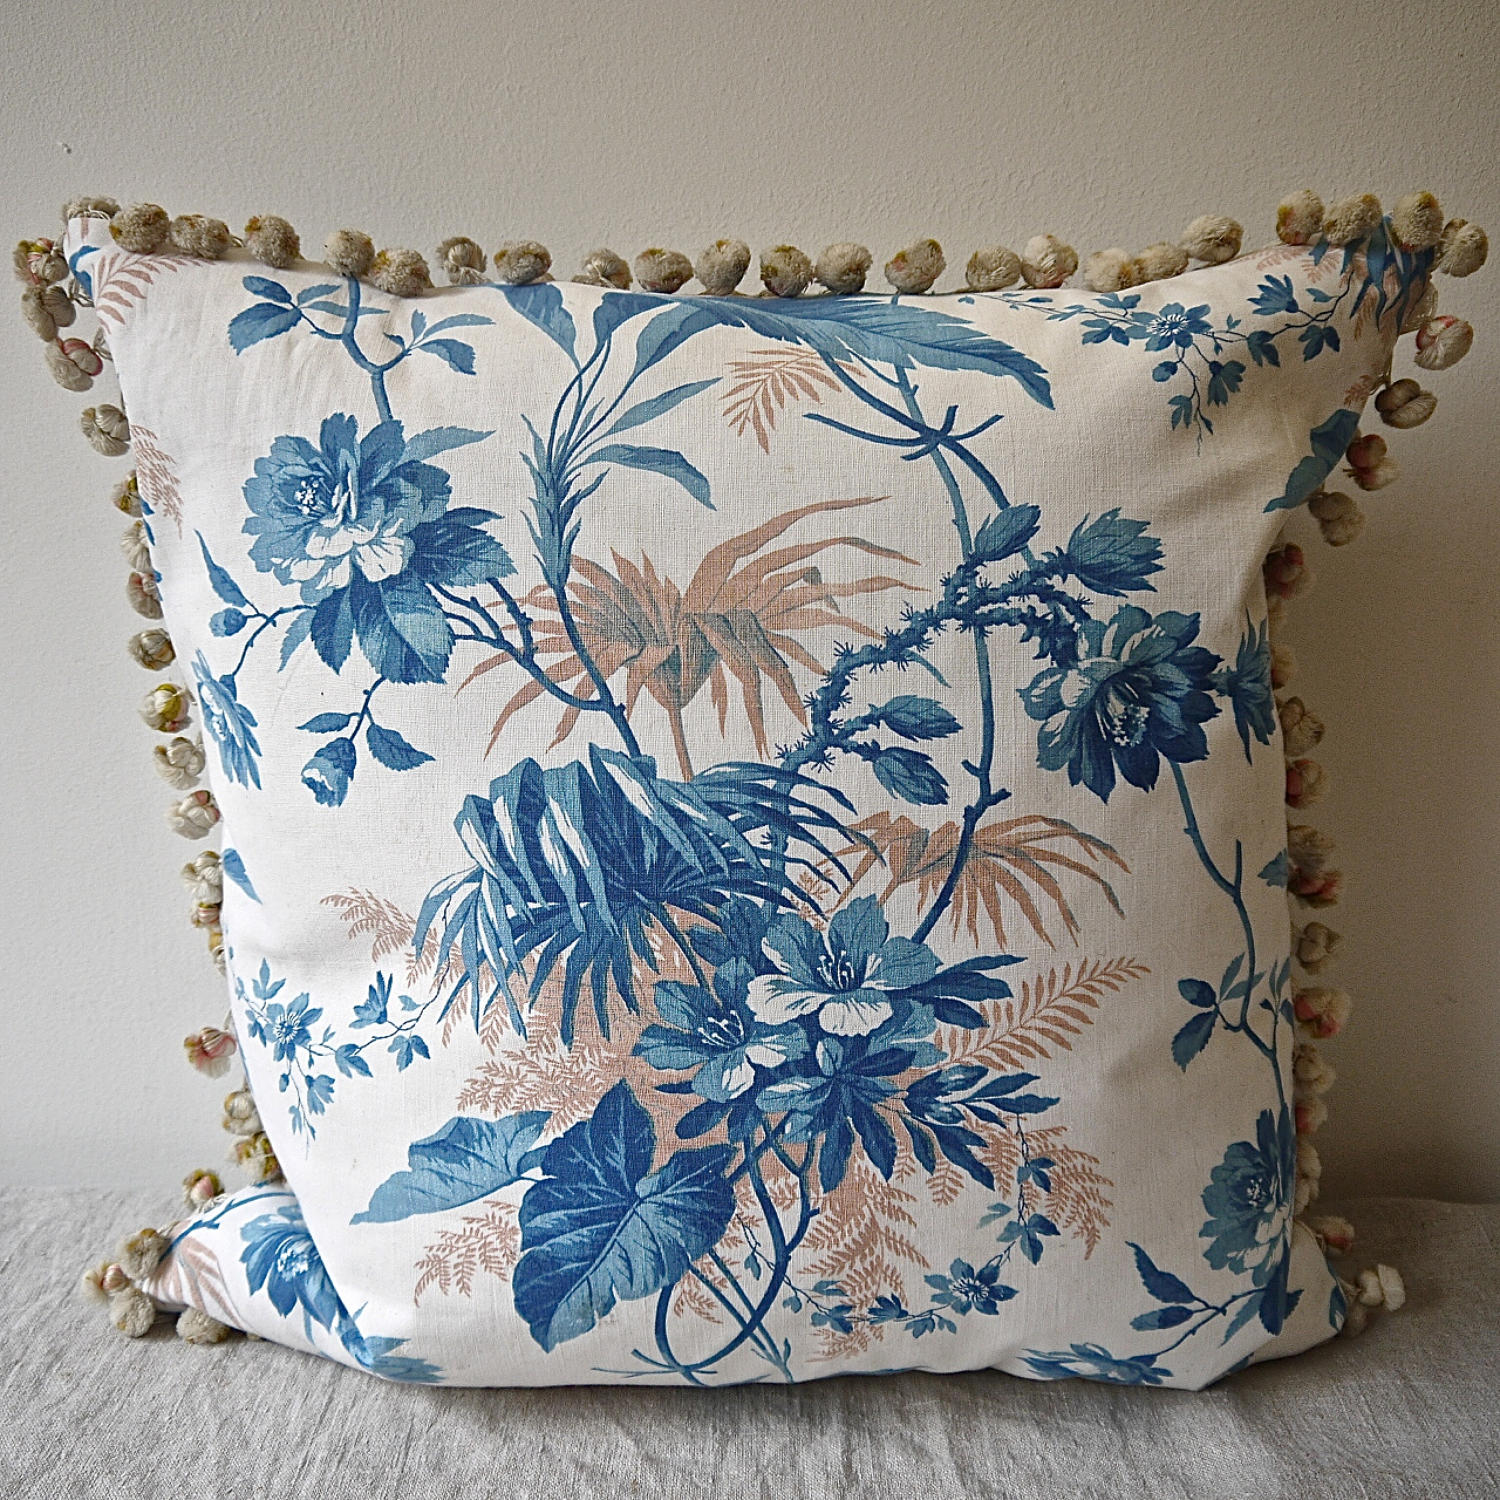 19th century French blue leaves cushion